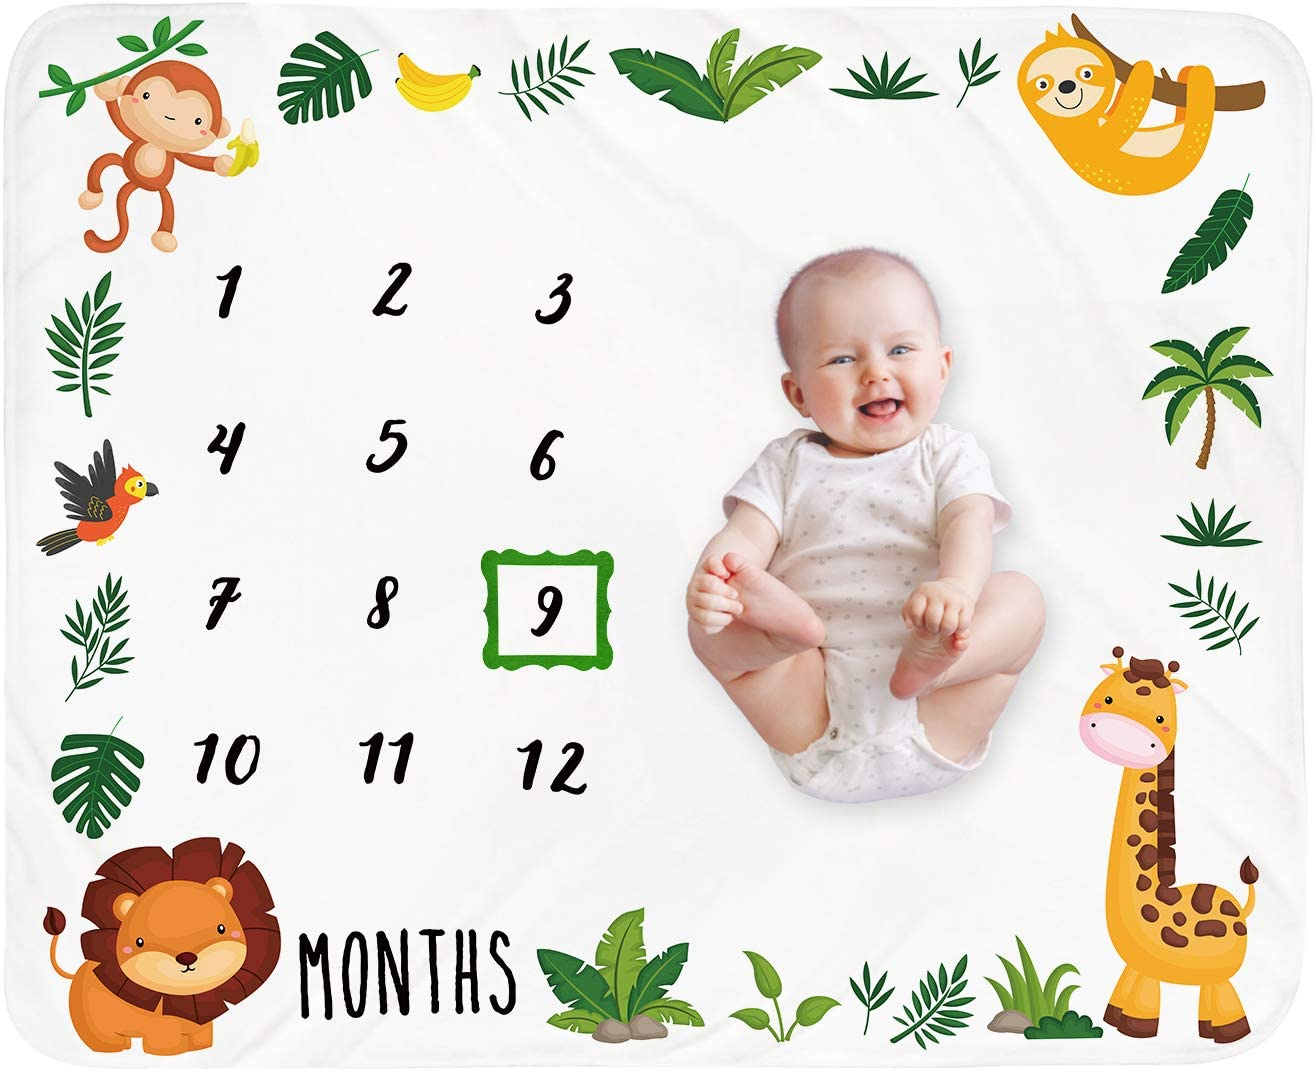 Baby Monthly Milestone Blanket Boy - Jungle Animals Neutral Newborn Month Blanket for Boy & Girl Personalized Shower Gift Safari Nursery Decor Photography Background Prop with Frame Large 51''x40''